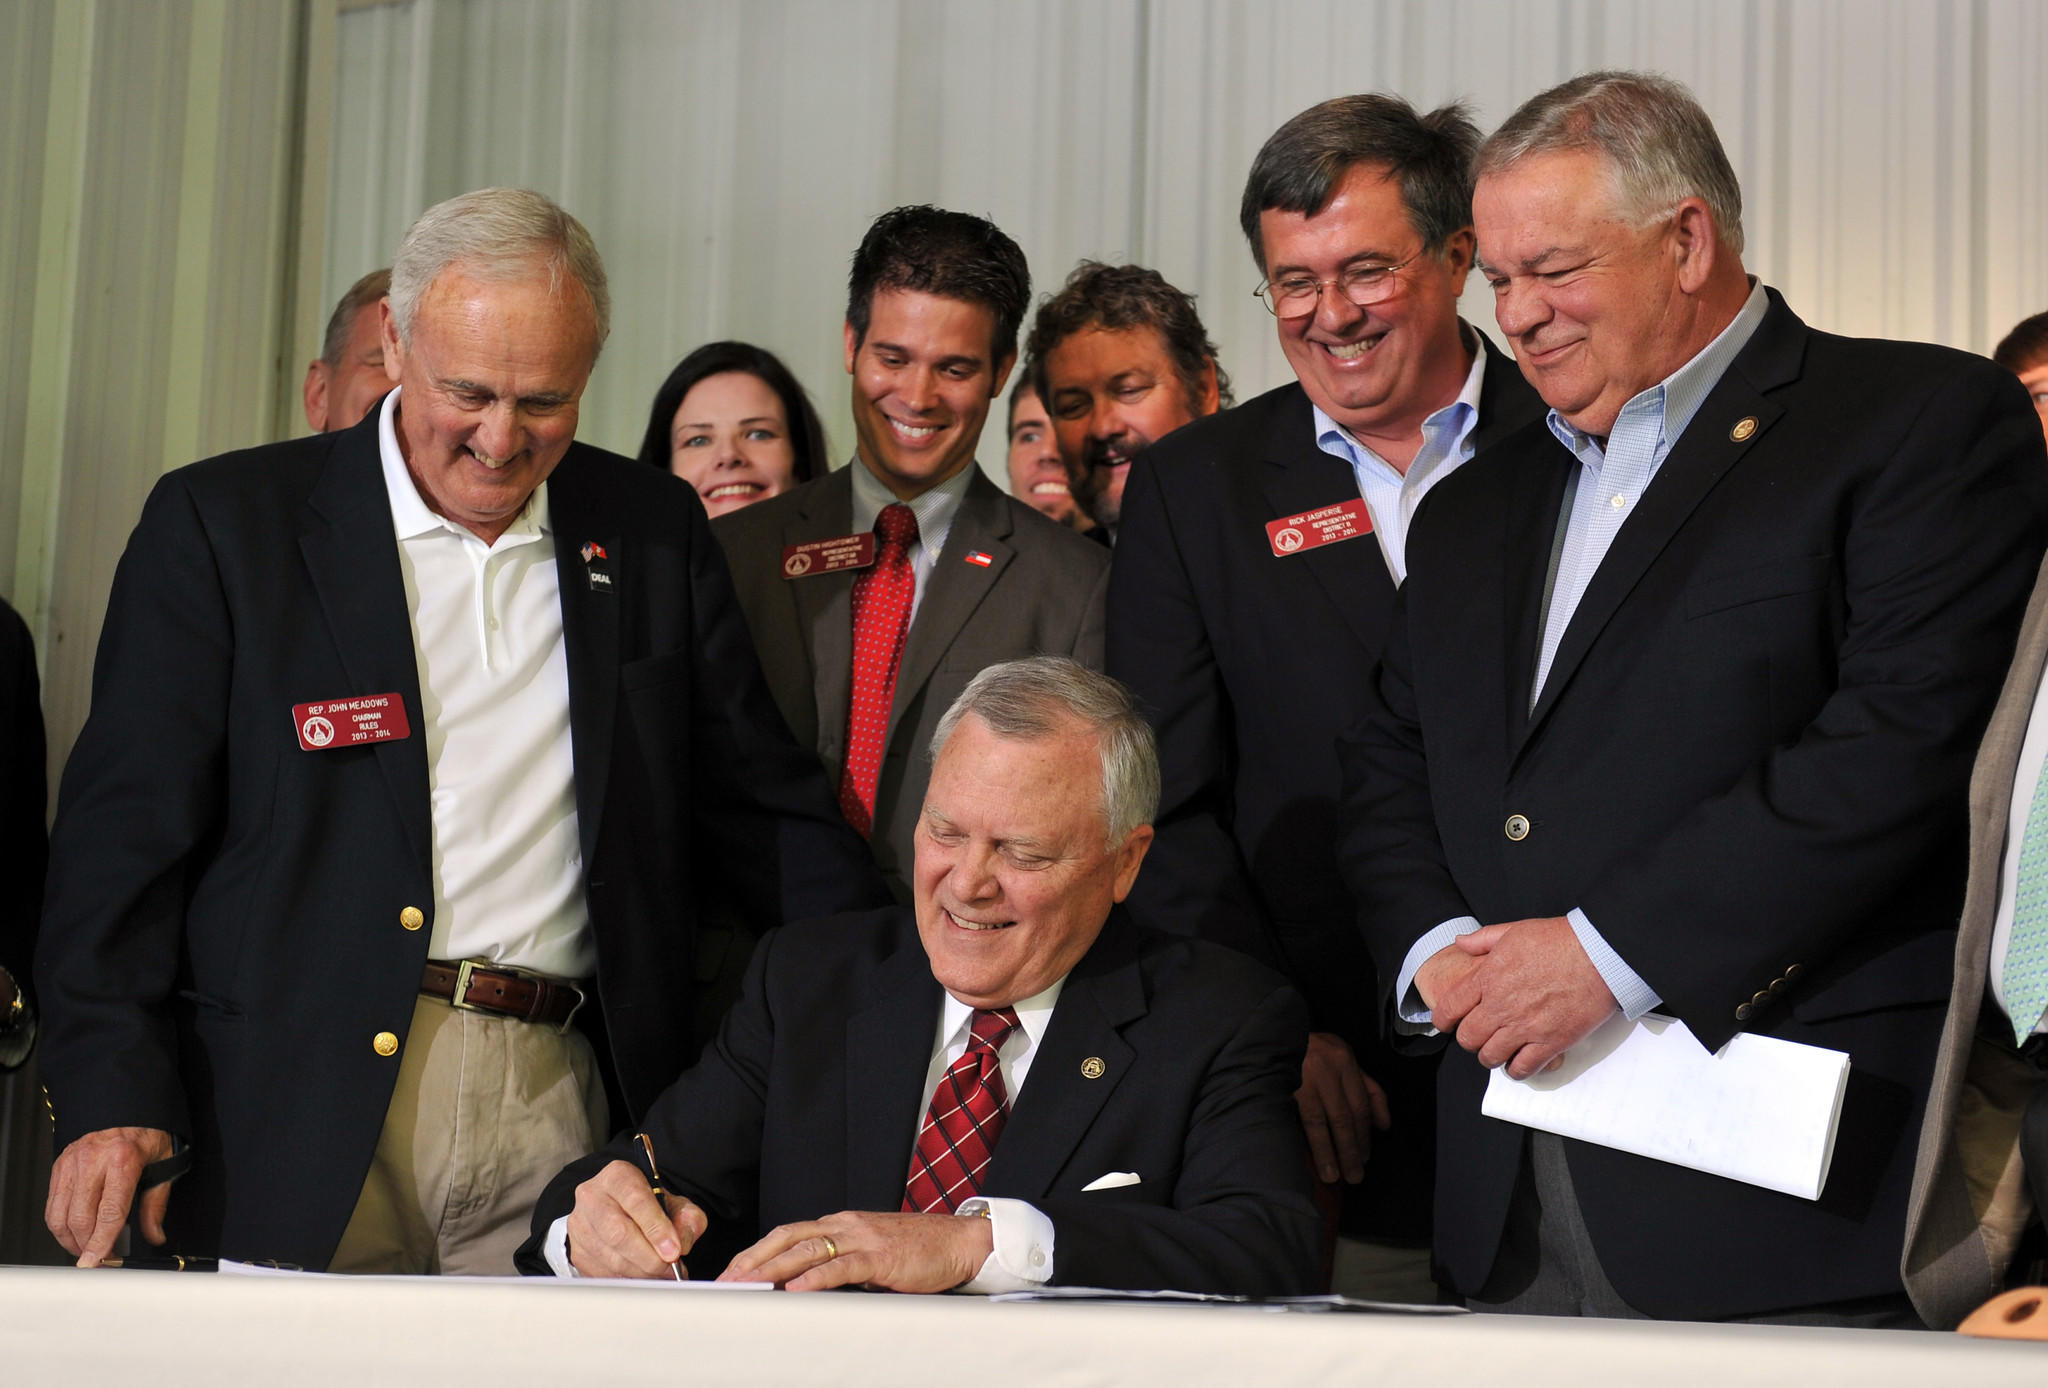 Surrounded by supporters of the legislation, Georgia Gov. Nathan Deal signs House Bill 60 into law Wednesday. The bill makes several changes to the state's gun laws.